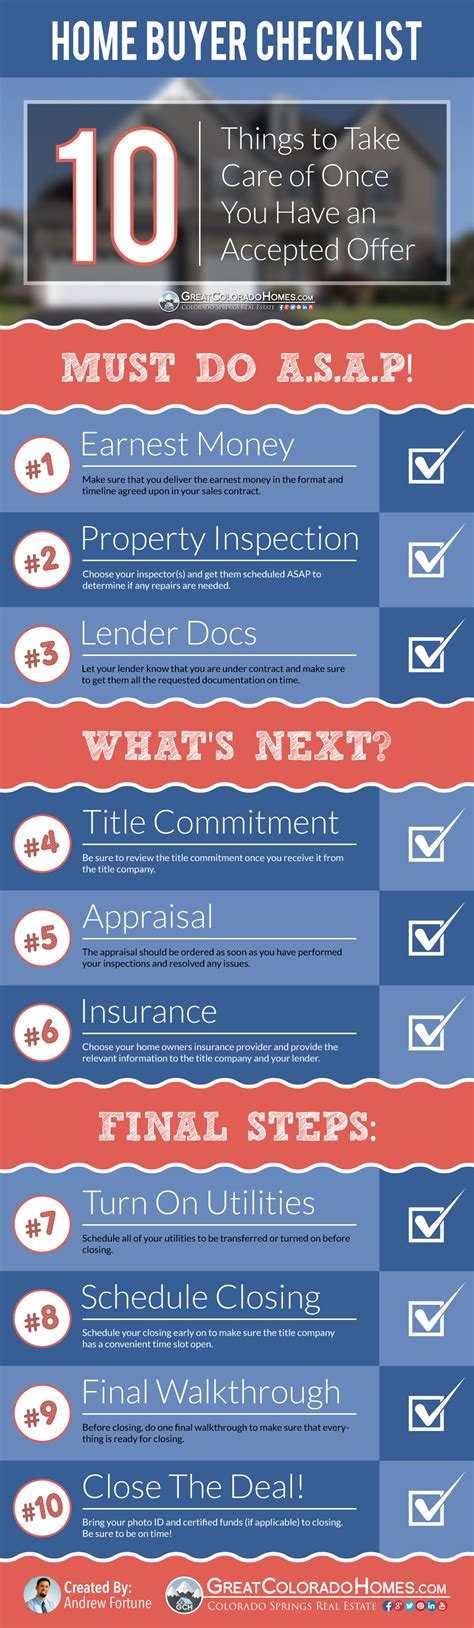 Home Buying Checklist [infographic] What Happens After